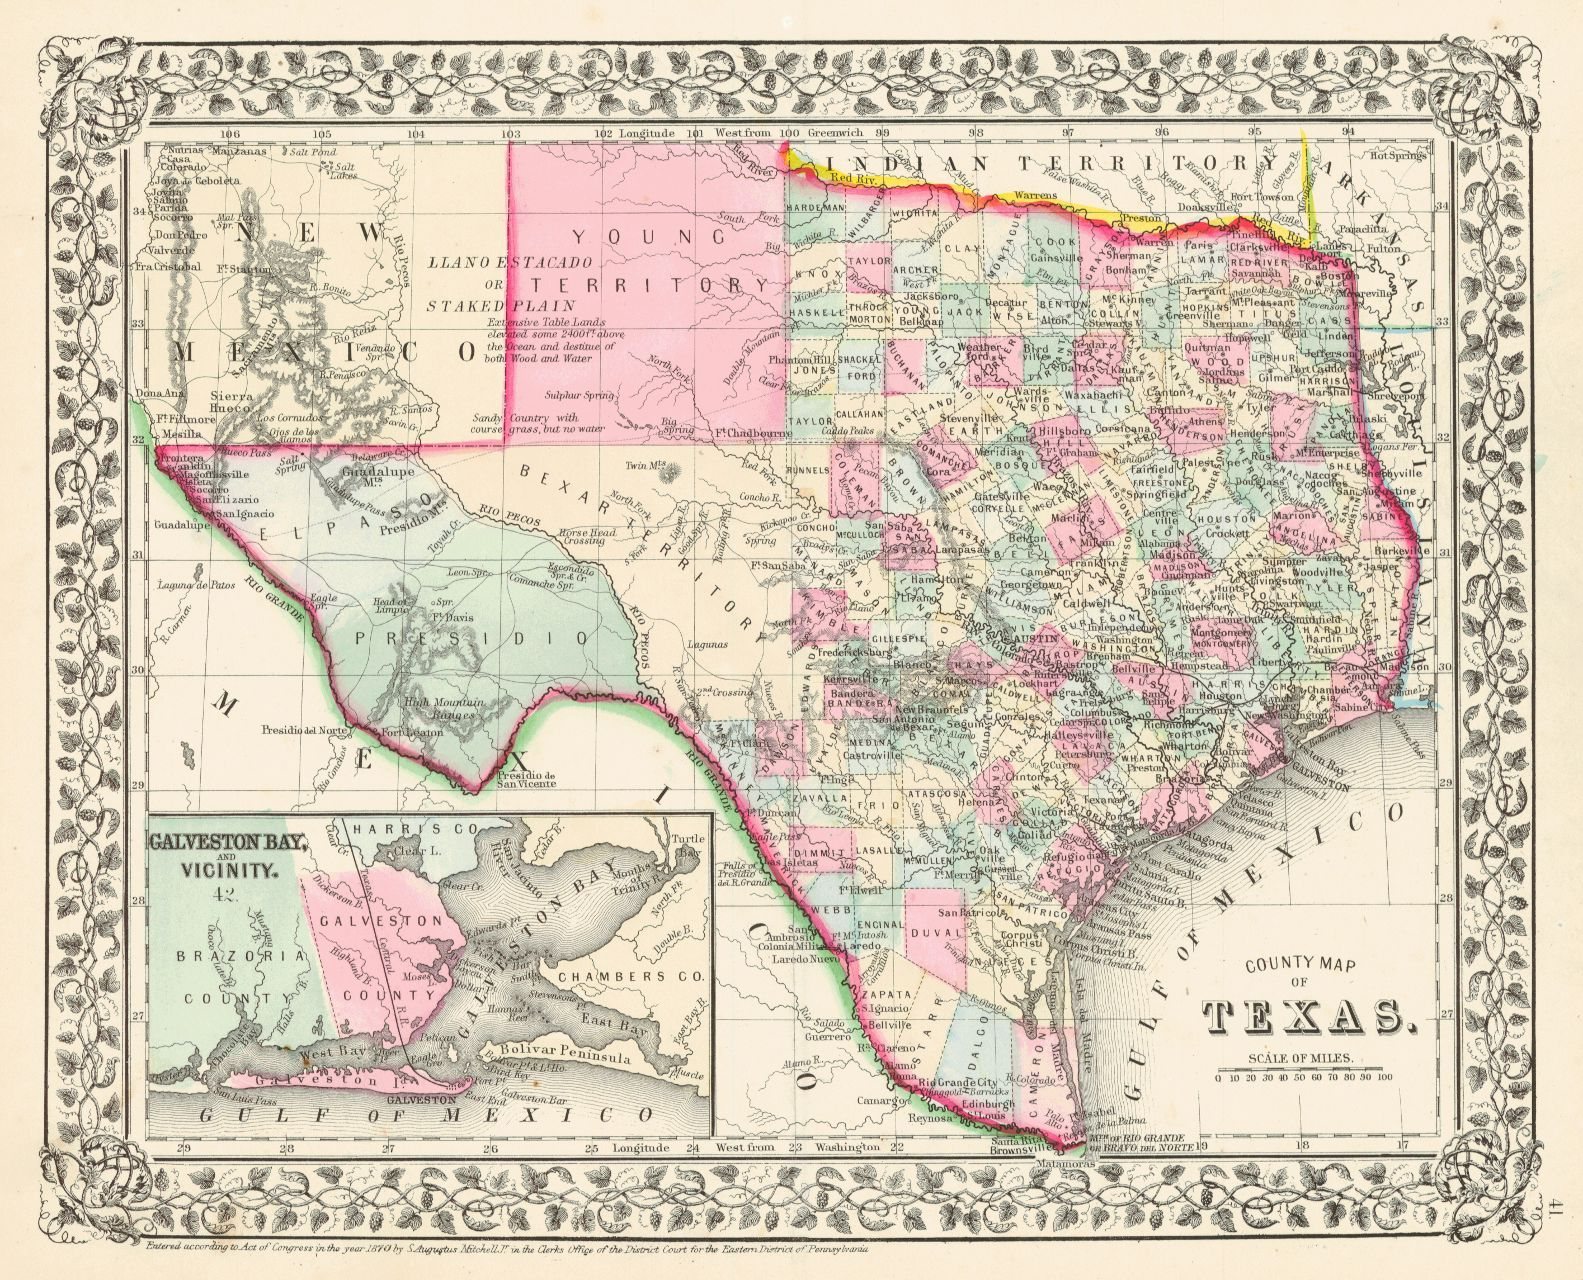 Detail Map Of Texas.County Map Of Texas S Aug Mitchell Jr 1870 Inset Of Galveston